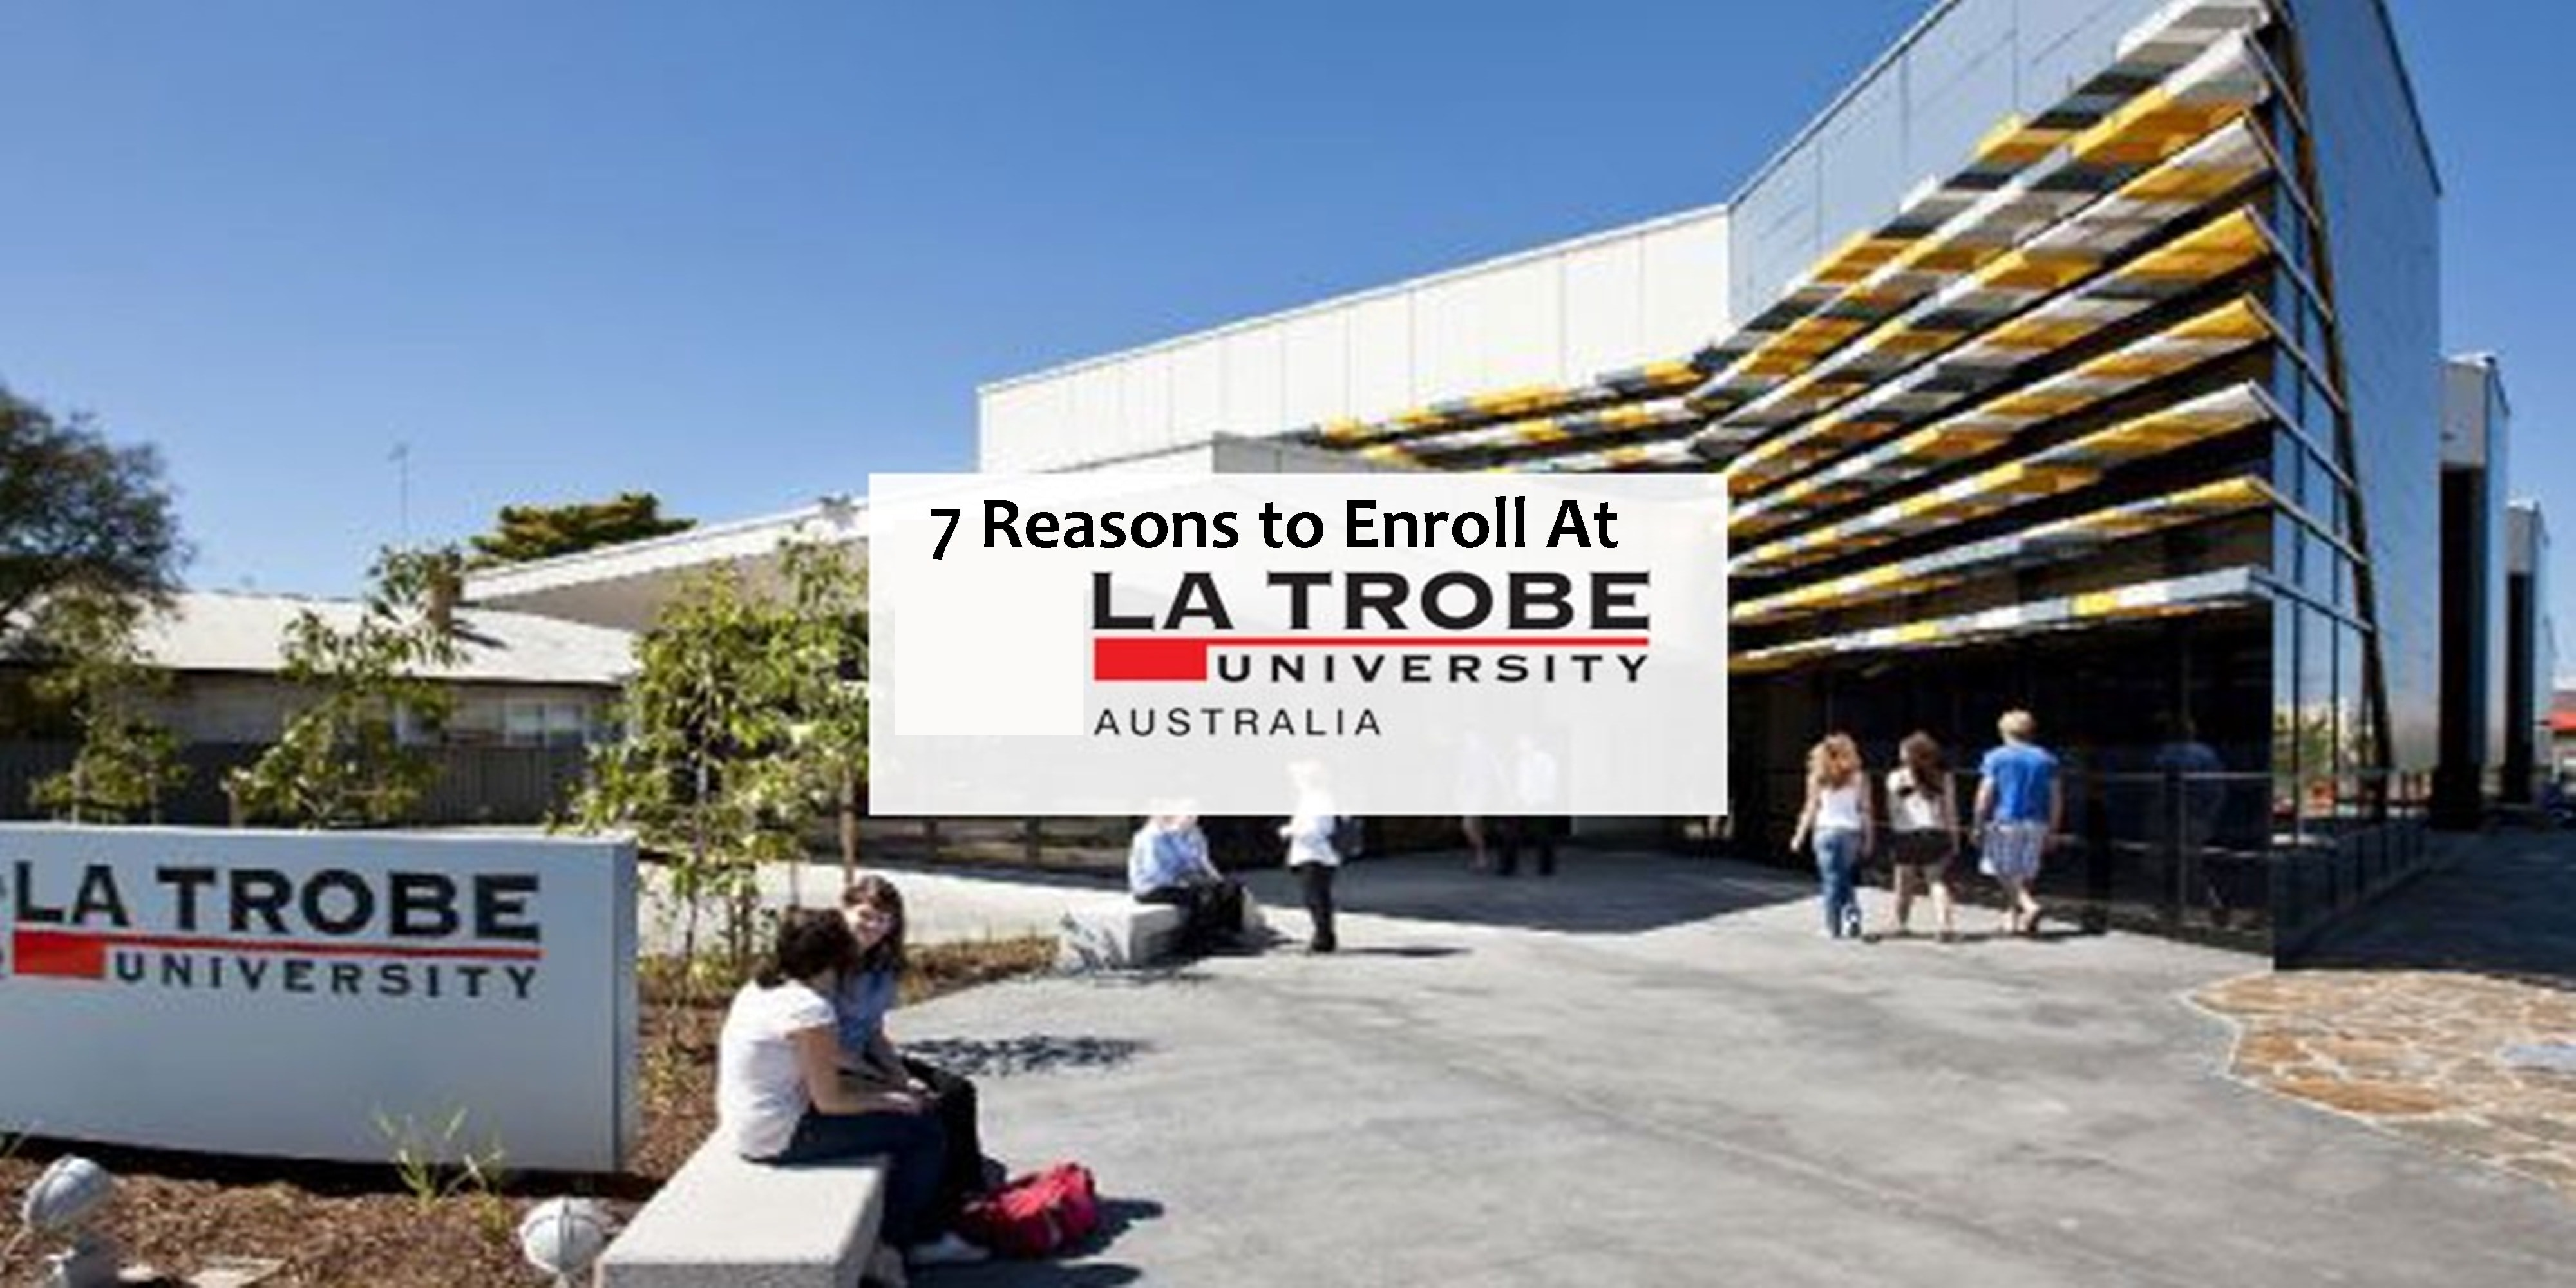 7 Reasons to Enroll At La Trobe University